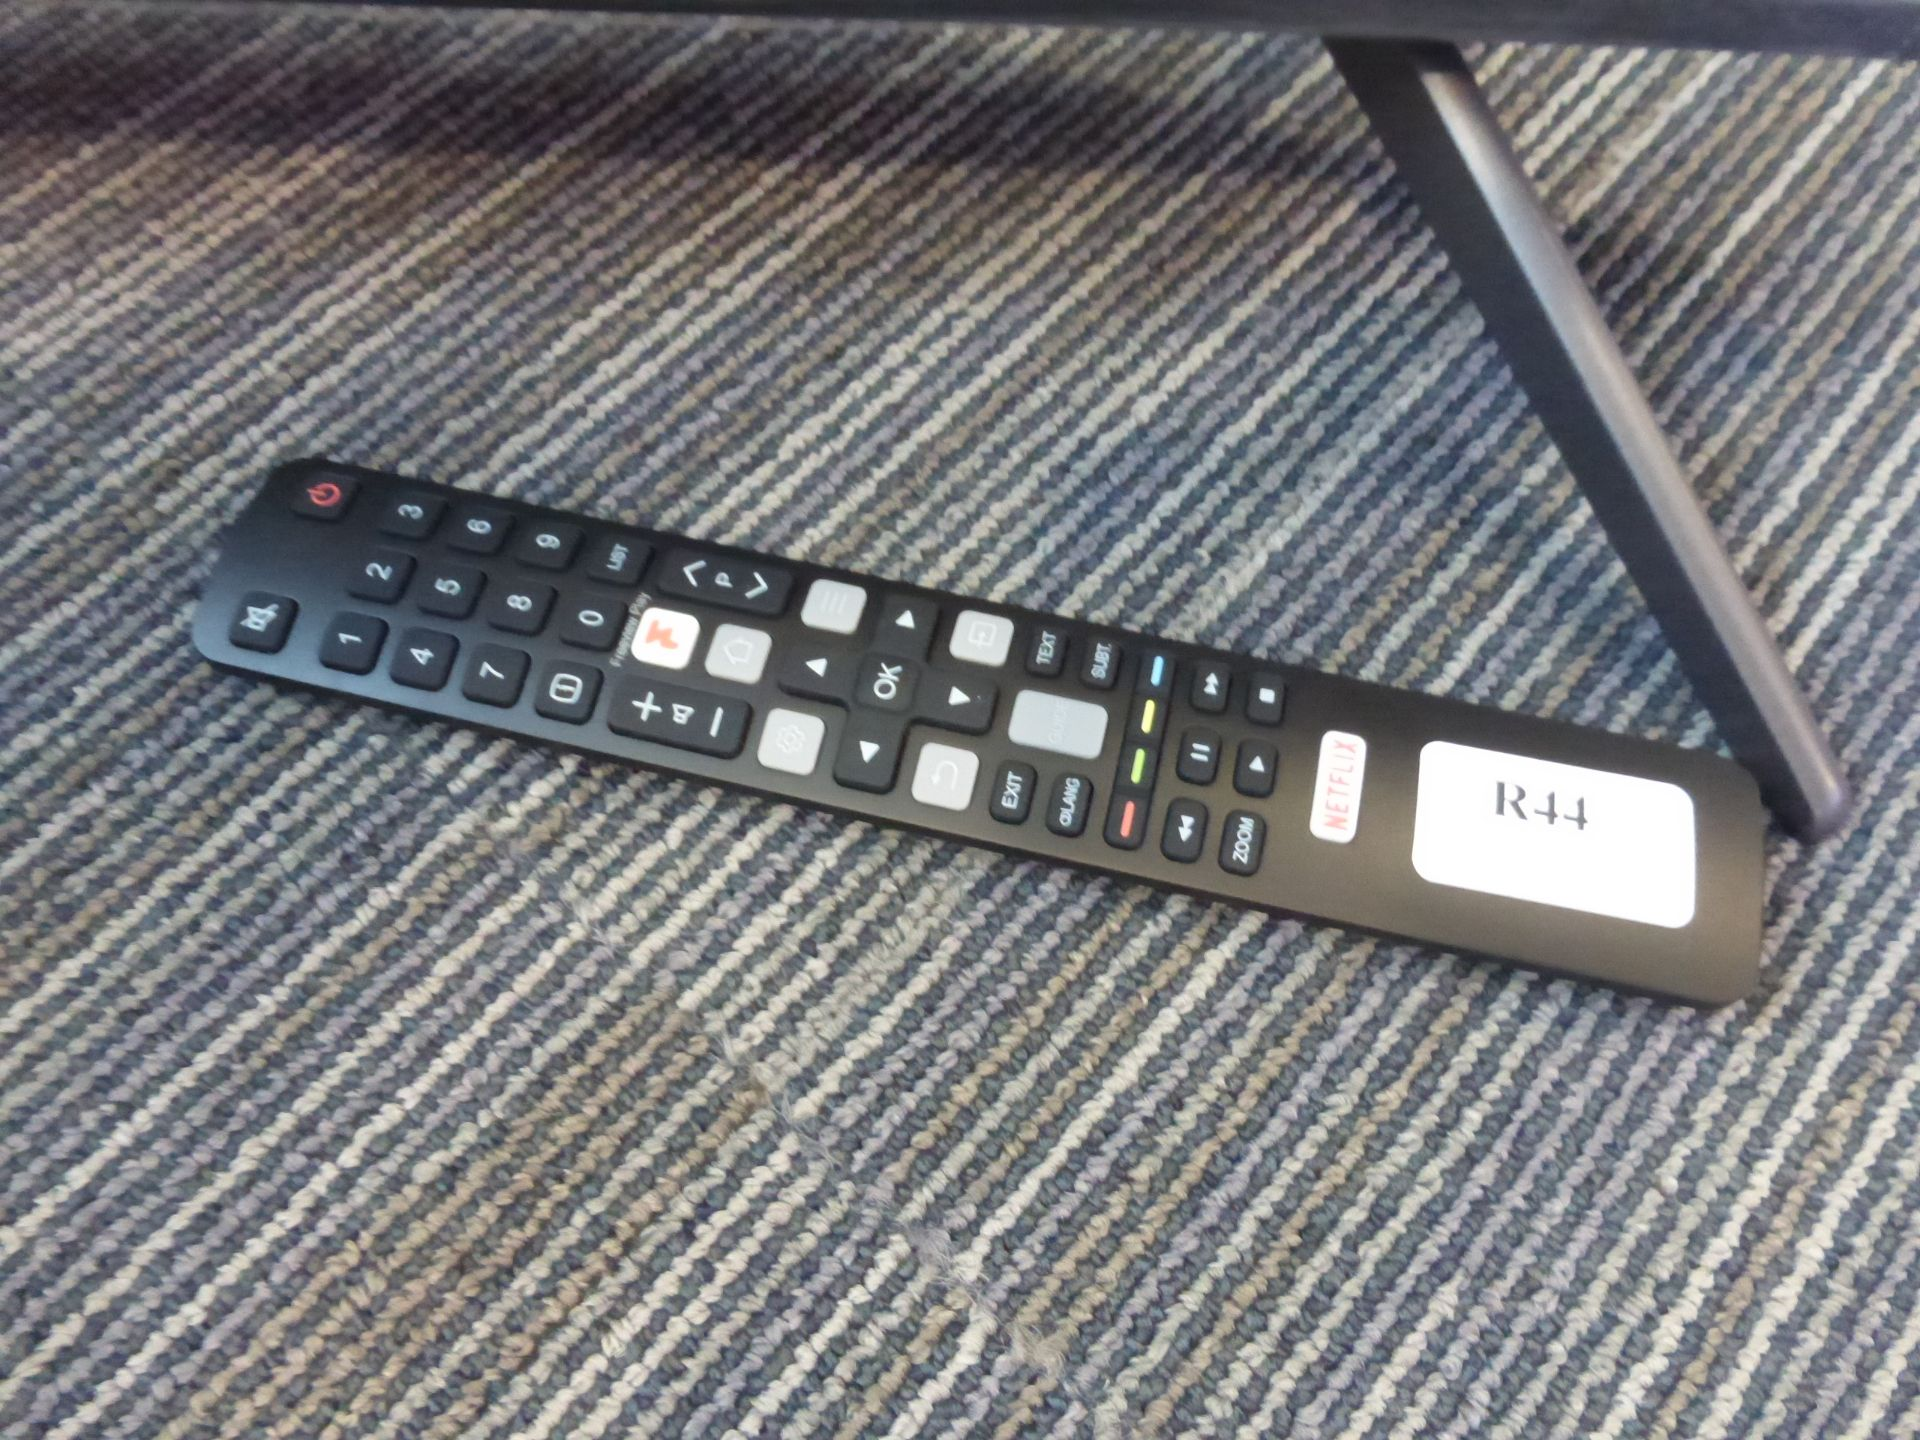 TCL 50'' 4K TV Model: 50C715K, includes remote (R44) and box (B60) Screen has no visible damage, - Image 2 of 2